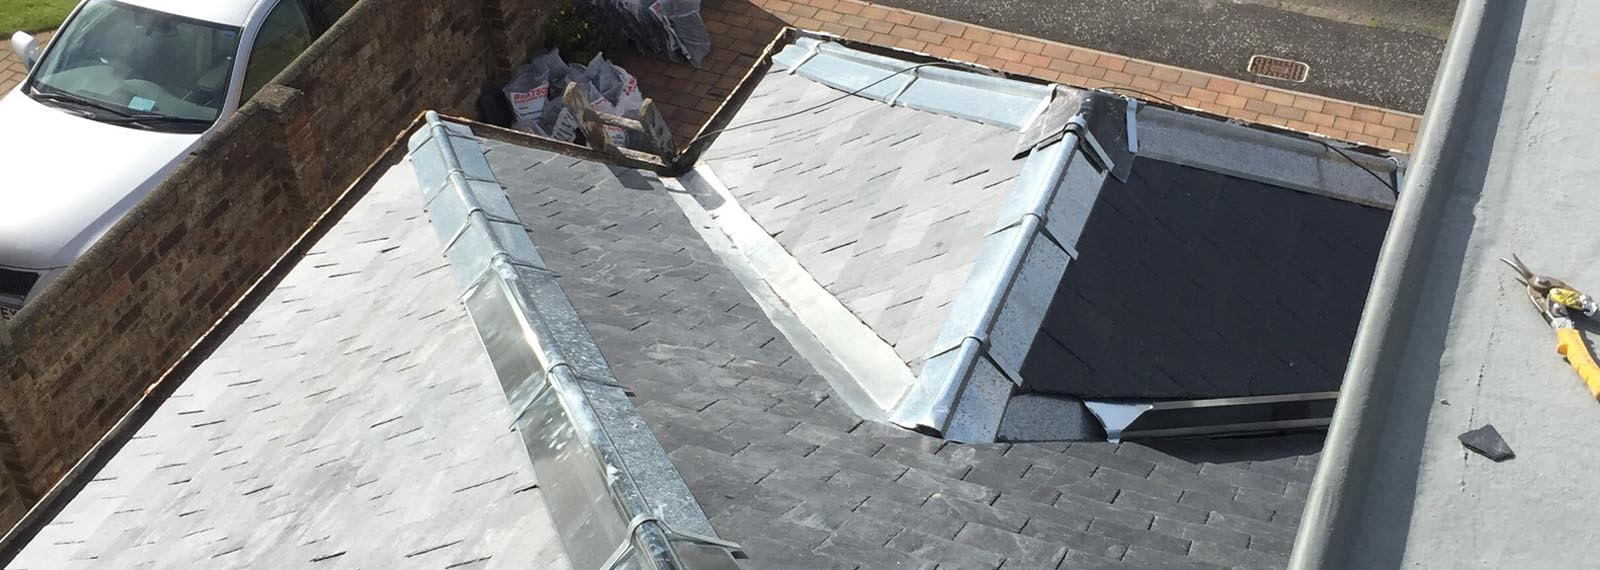 Roofing Repair Services in Edinburgh